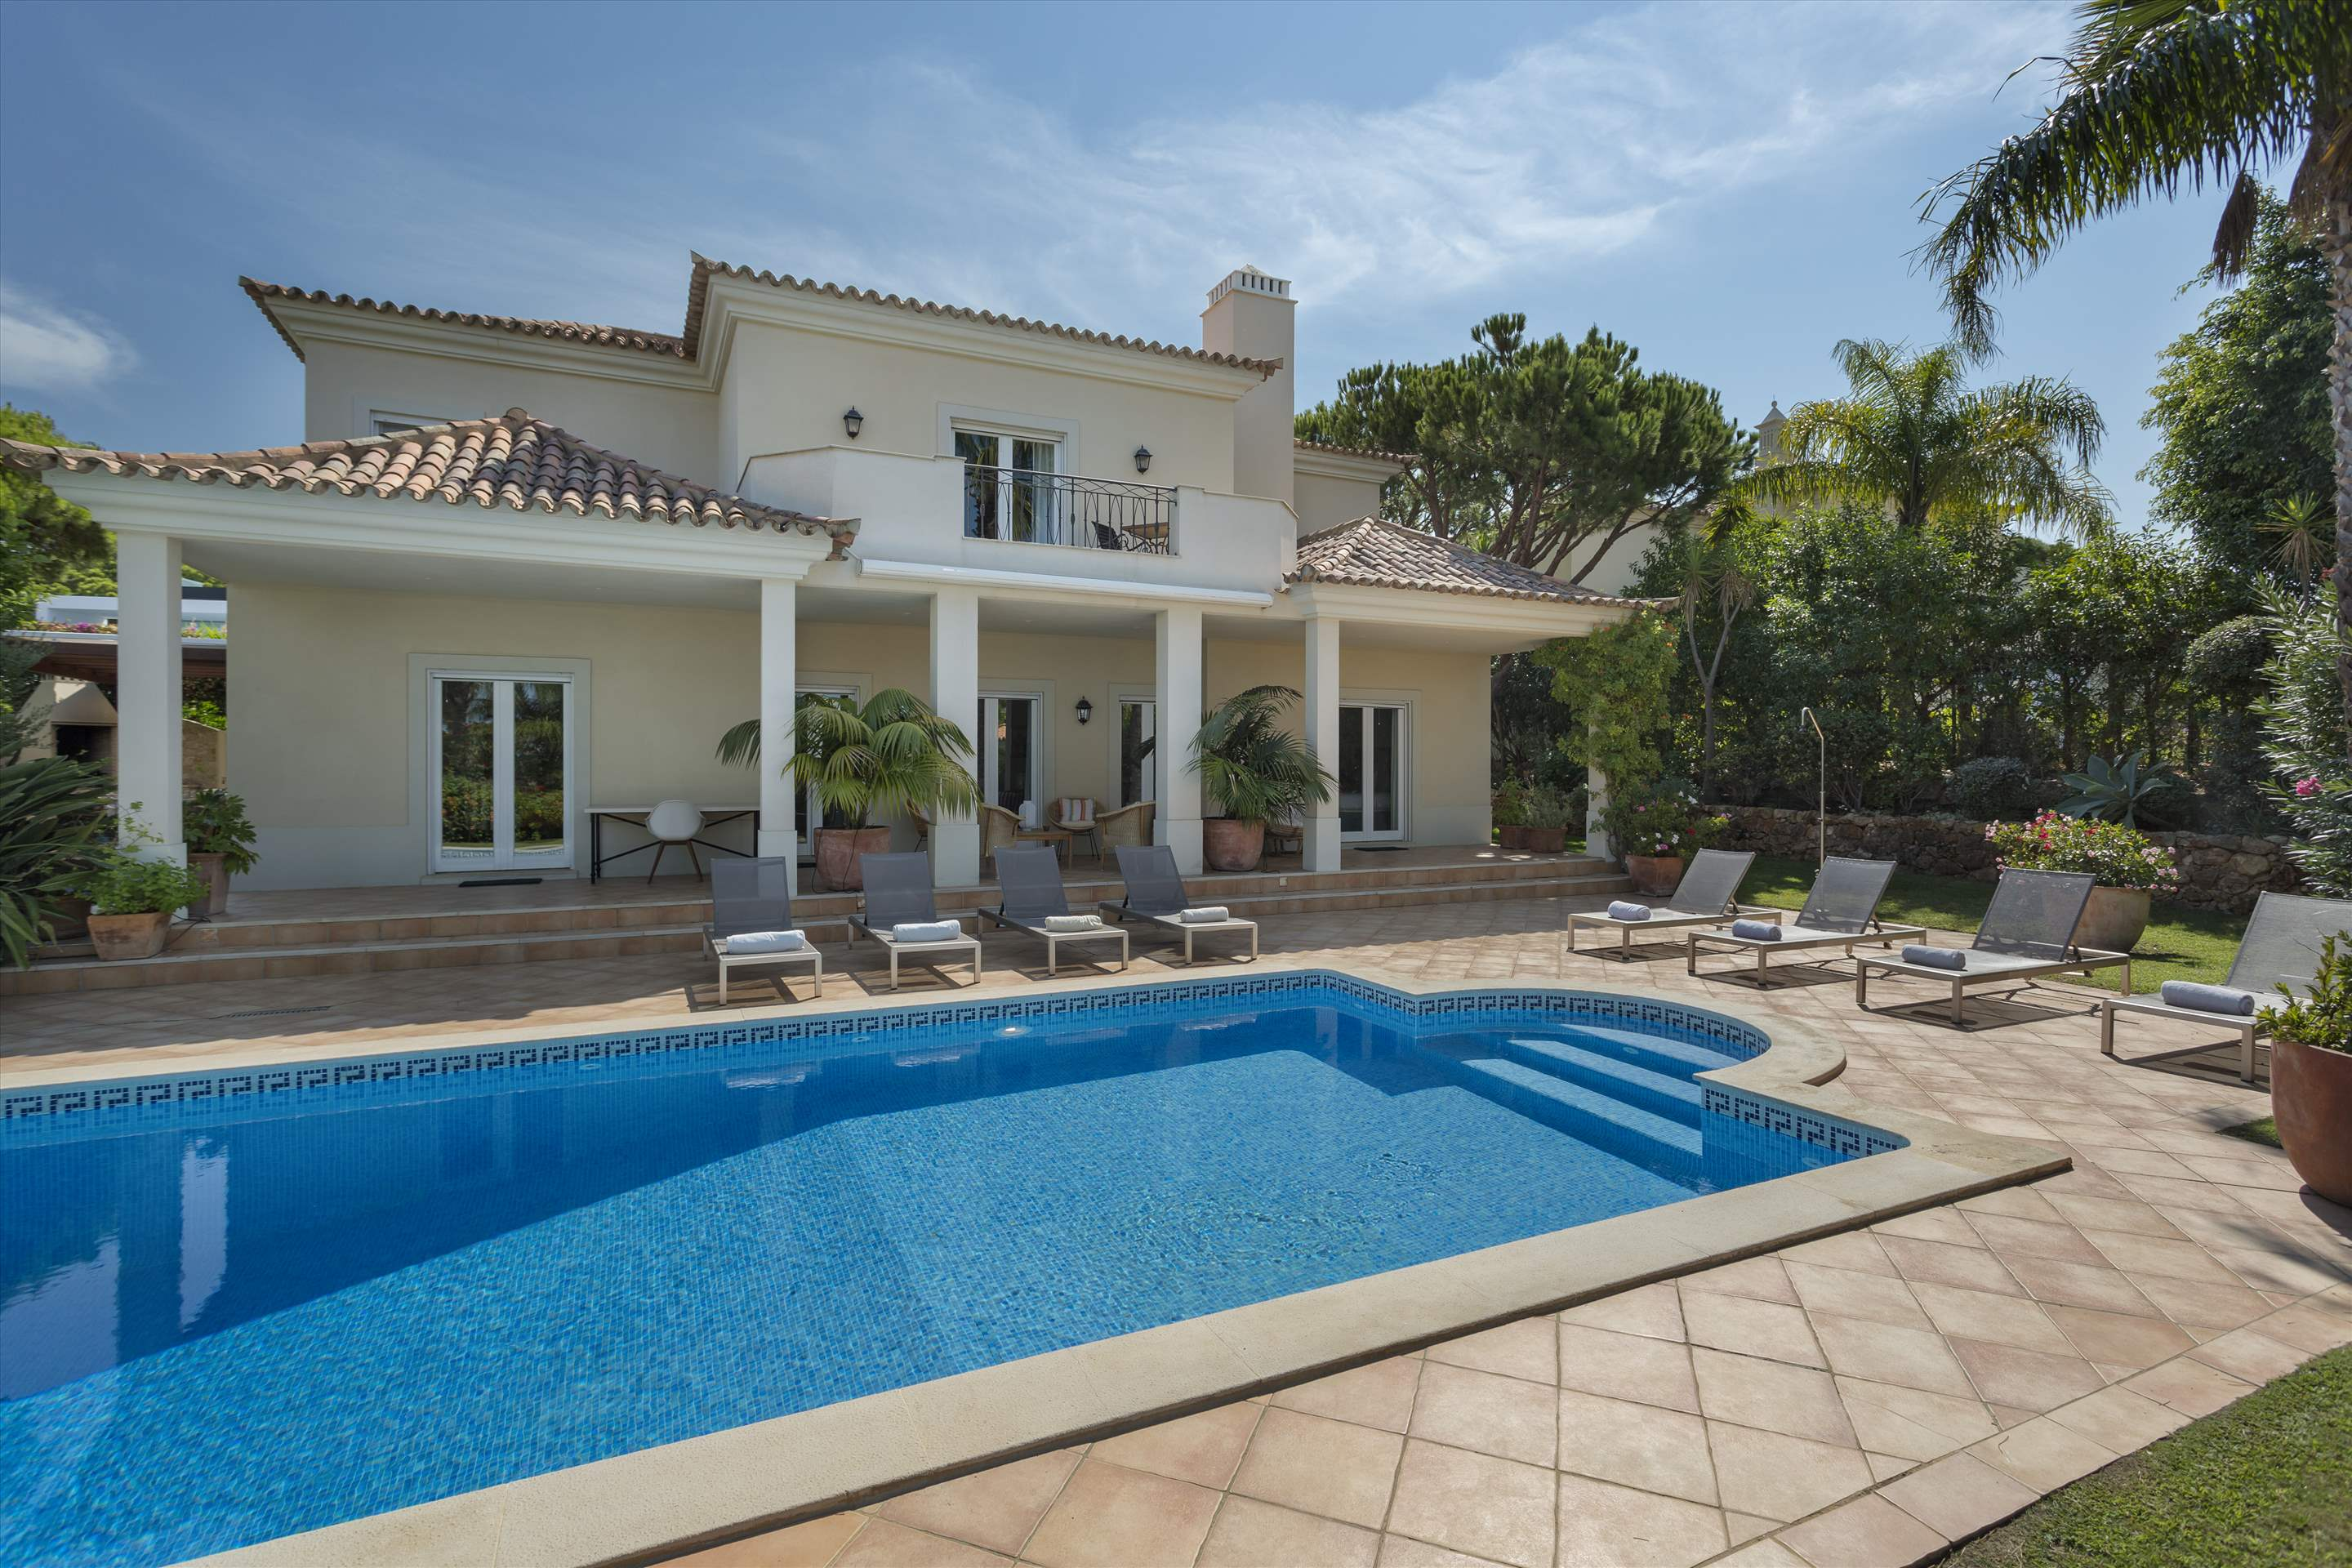 Villa Liza, 4 bedroom villa in Vale do Lobo, Algarve Photo #1